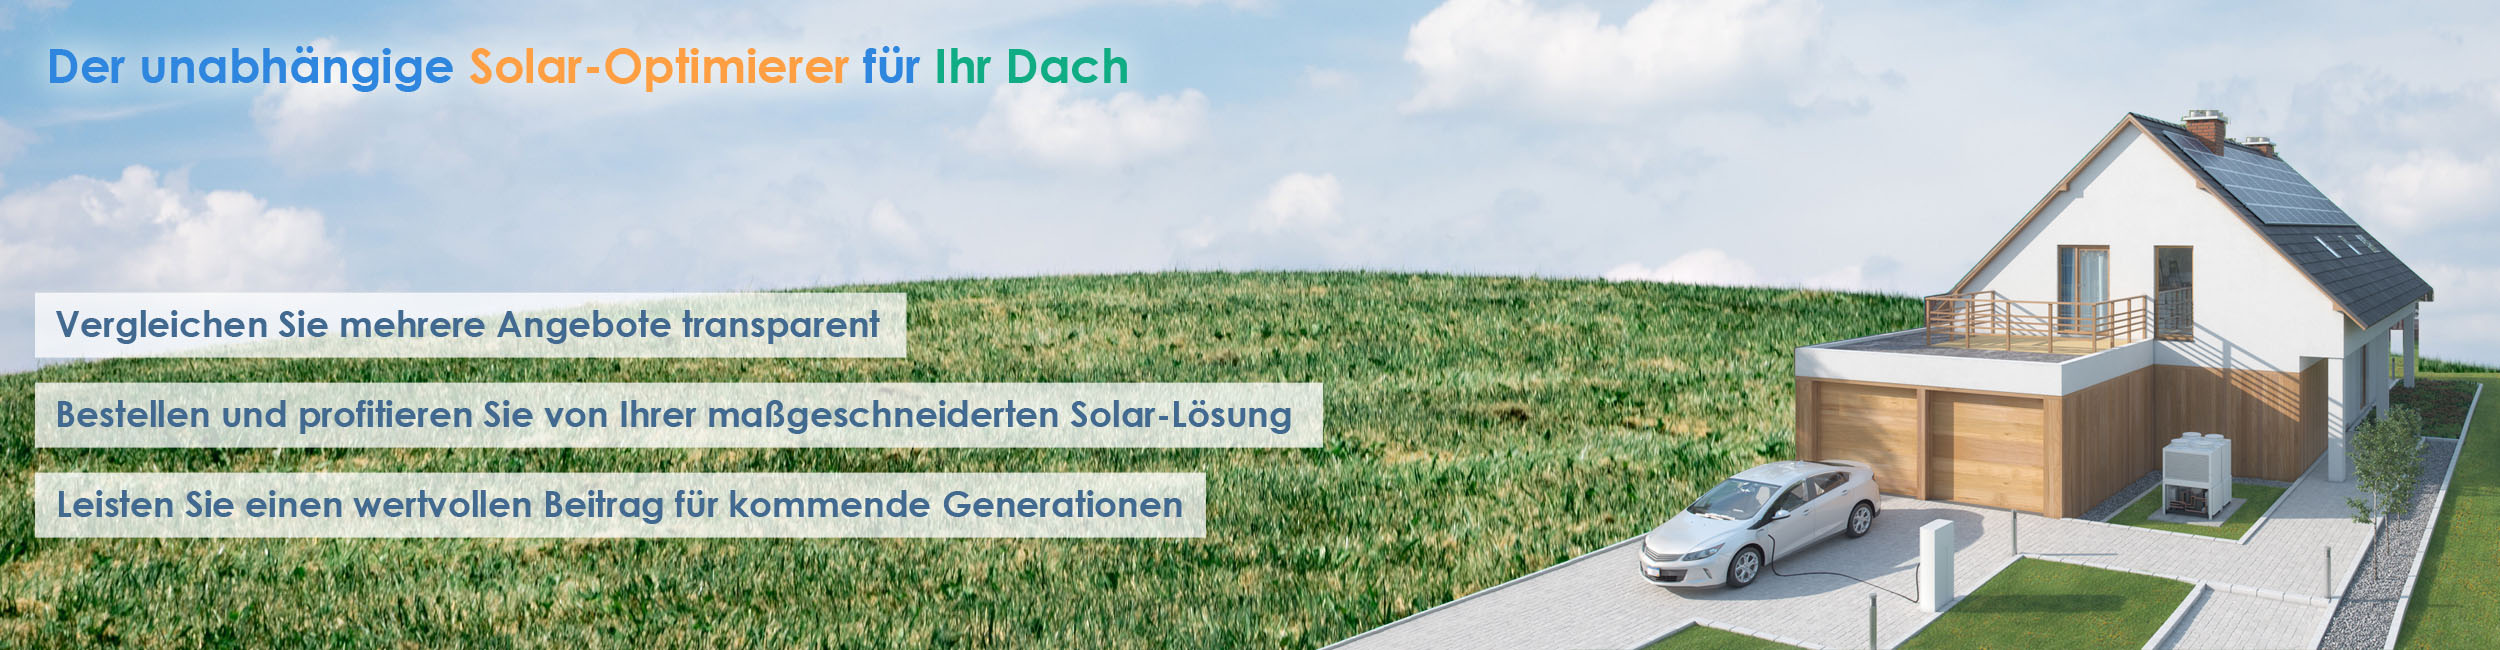 the independent solar optimizer for your roof